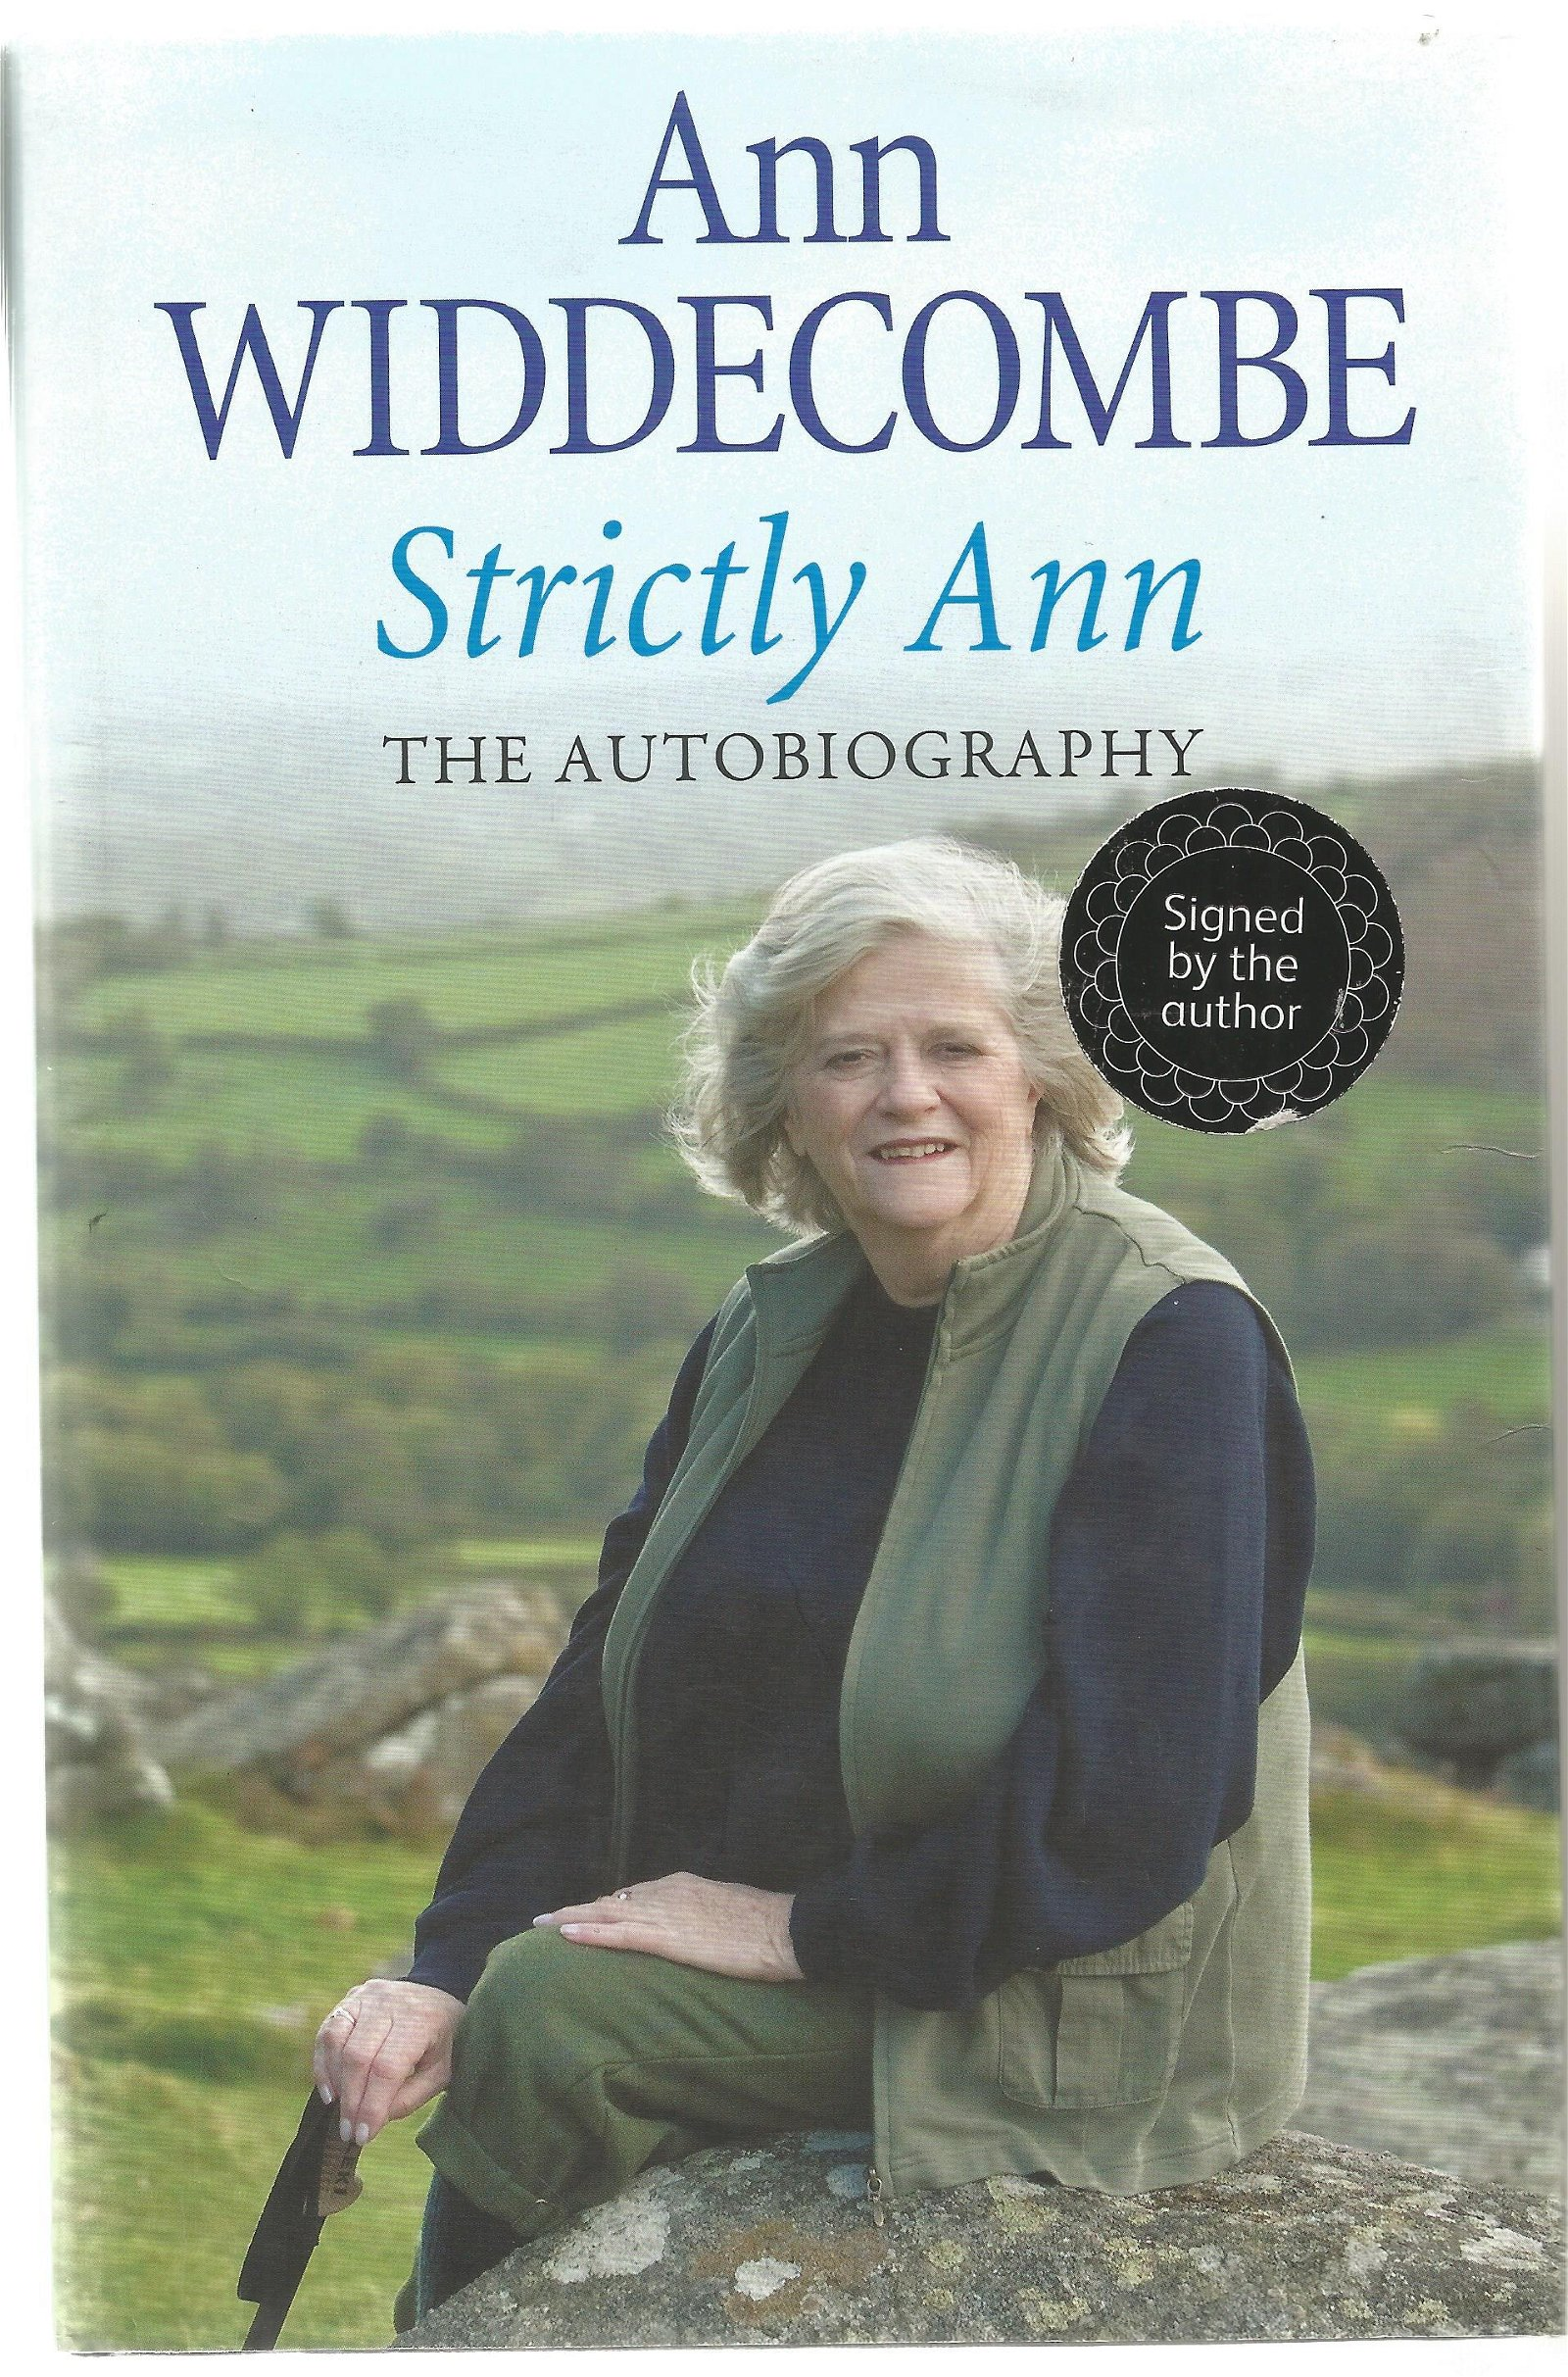 Ann Widdecombe signed Strictly Ann the autobiography